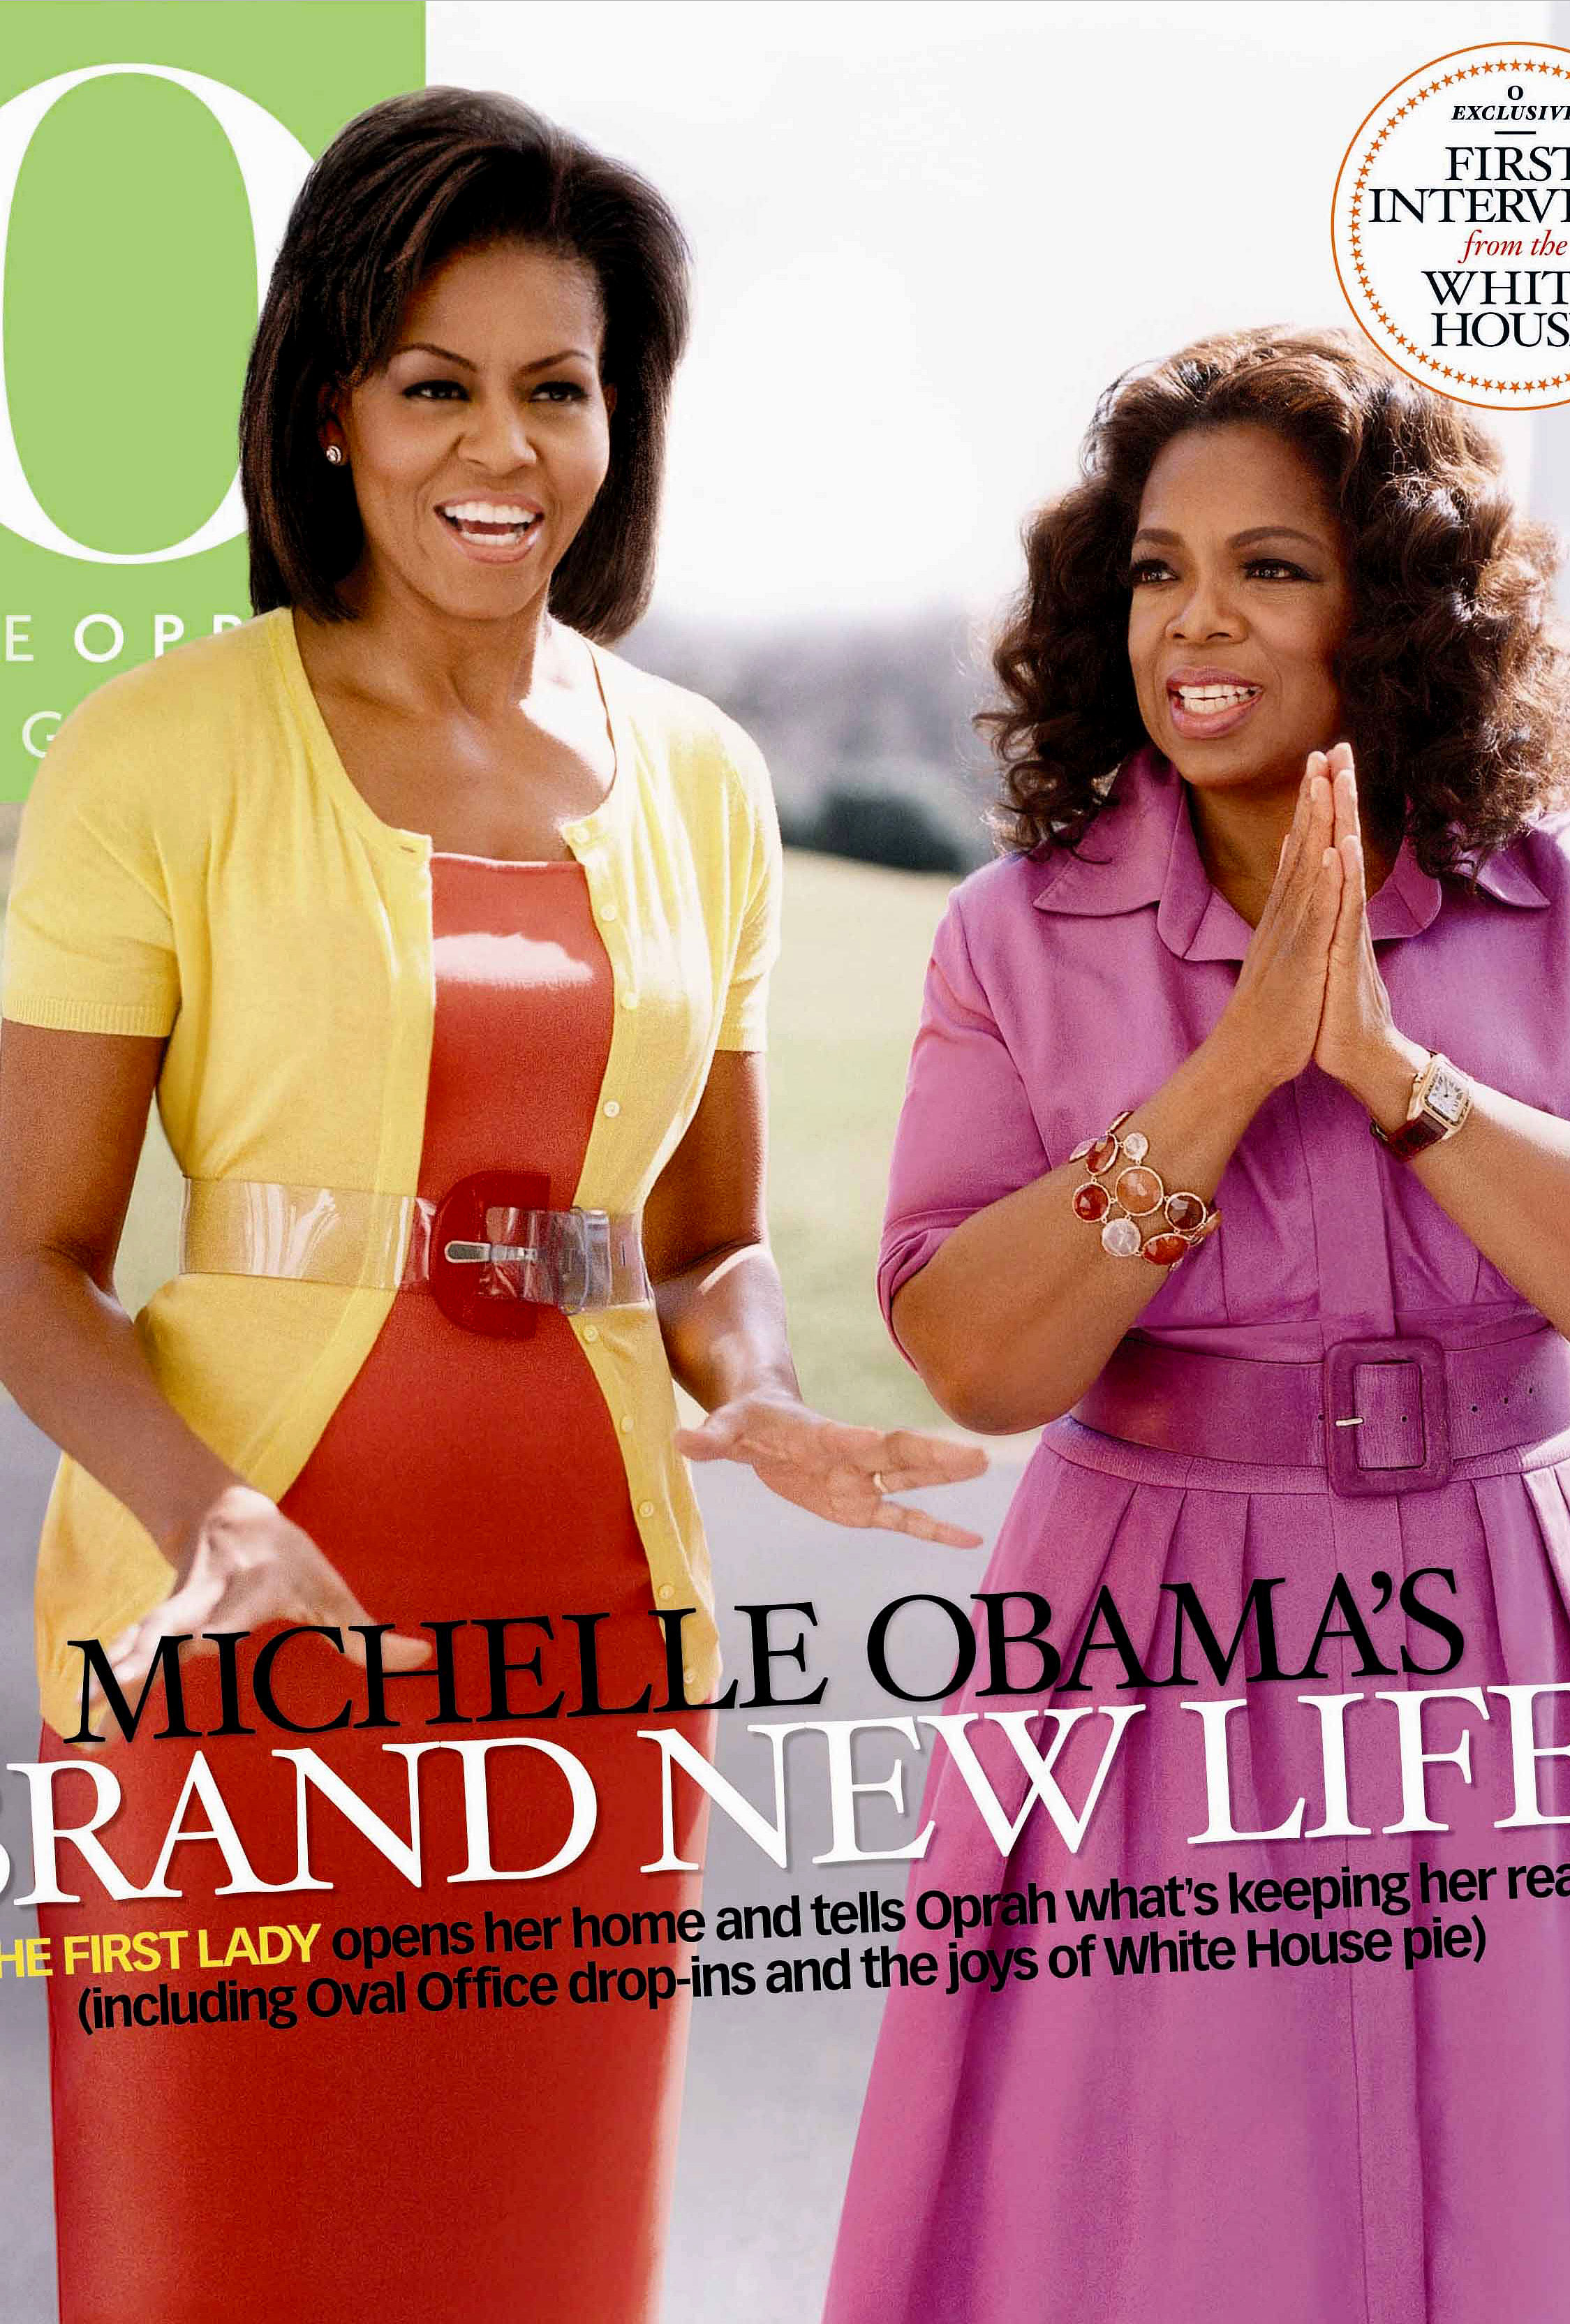 Michelle Obama's Big Plans for The White House